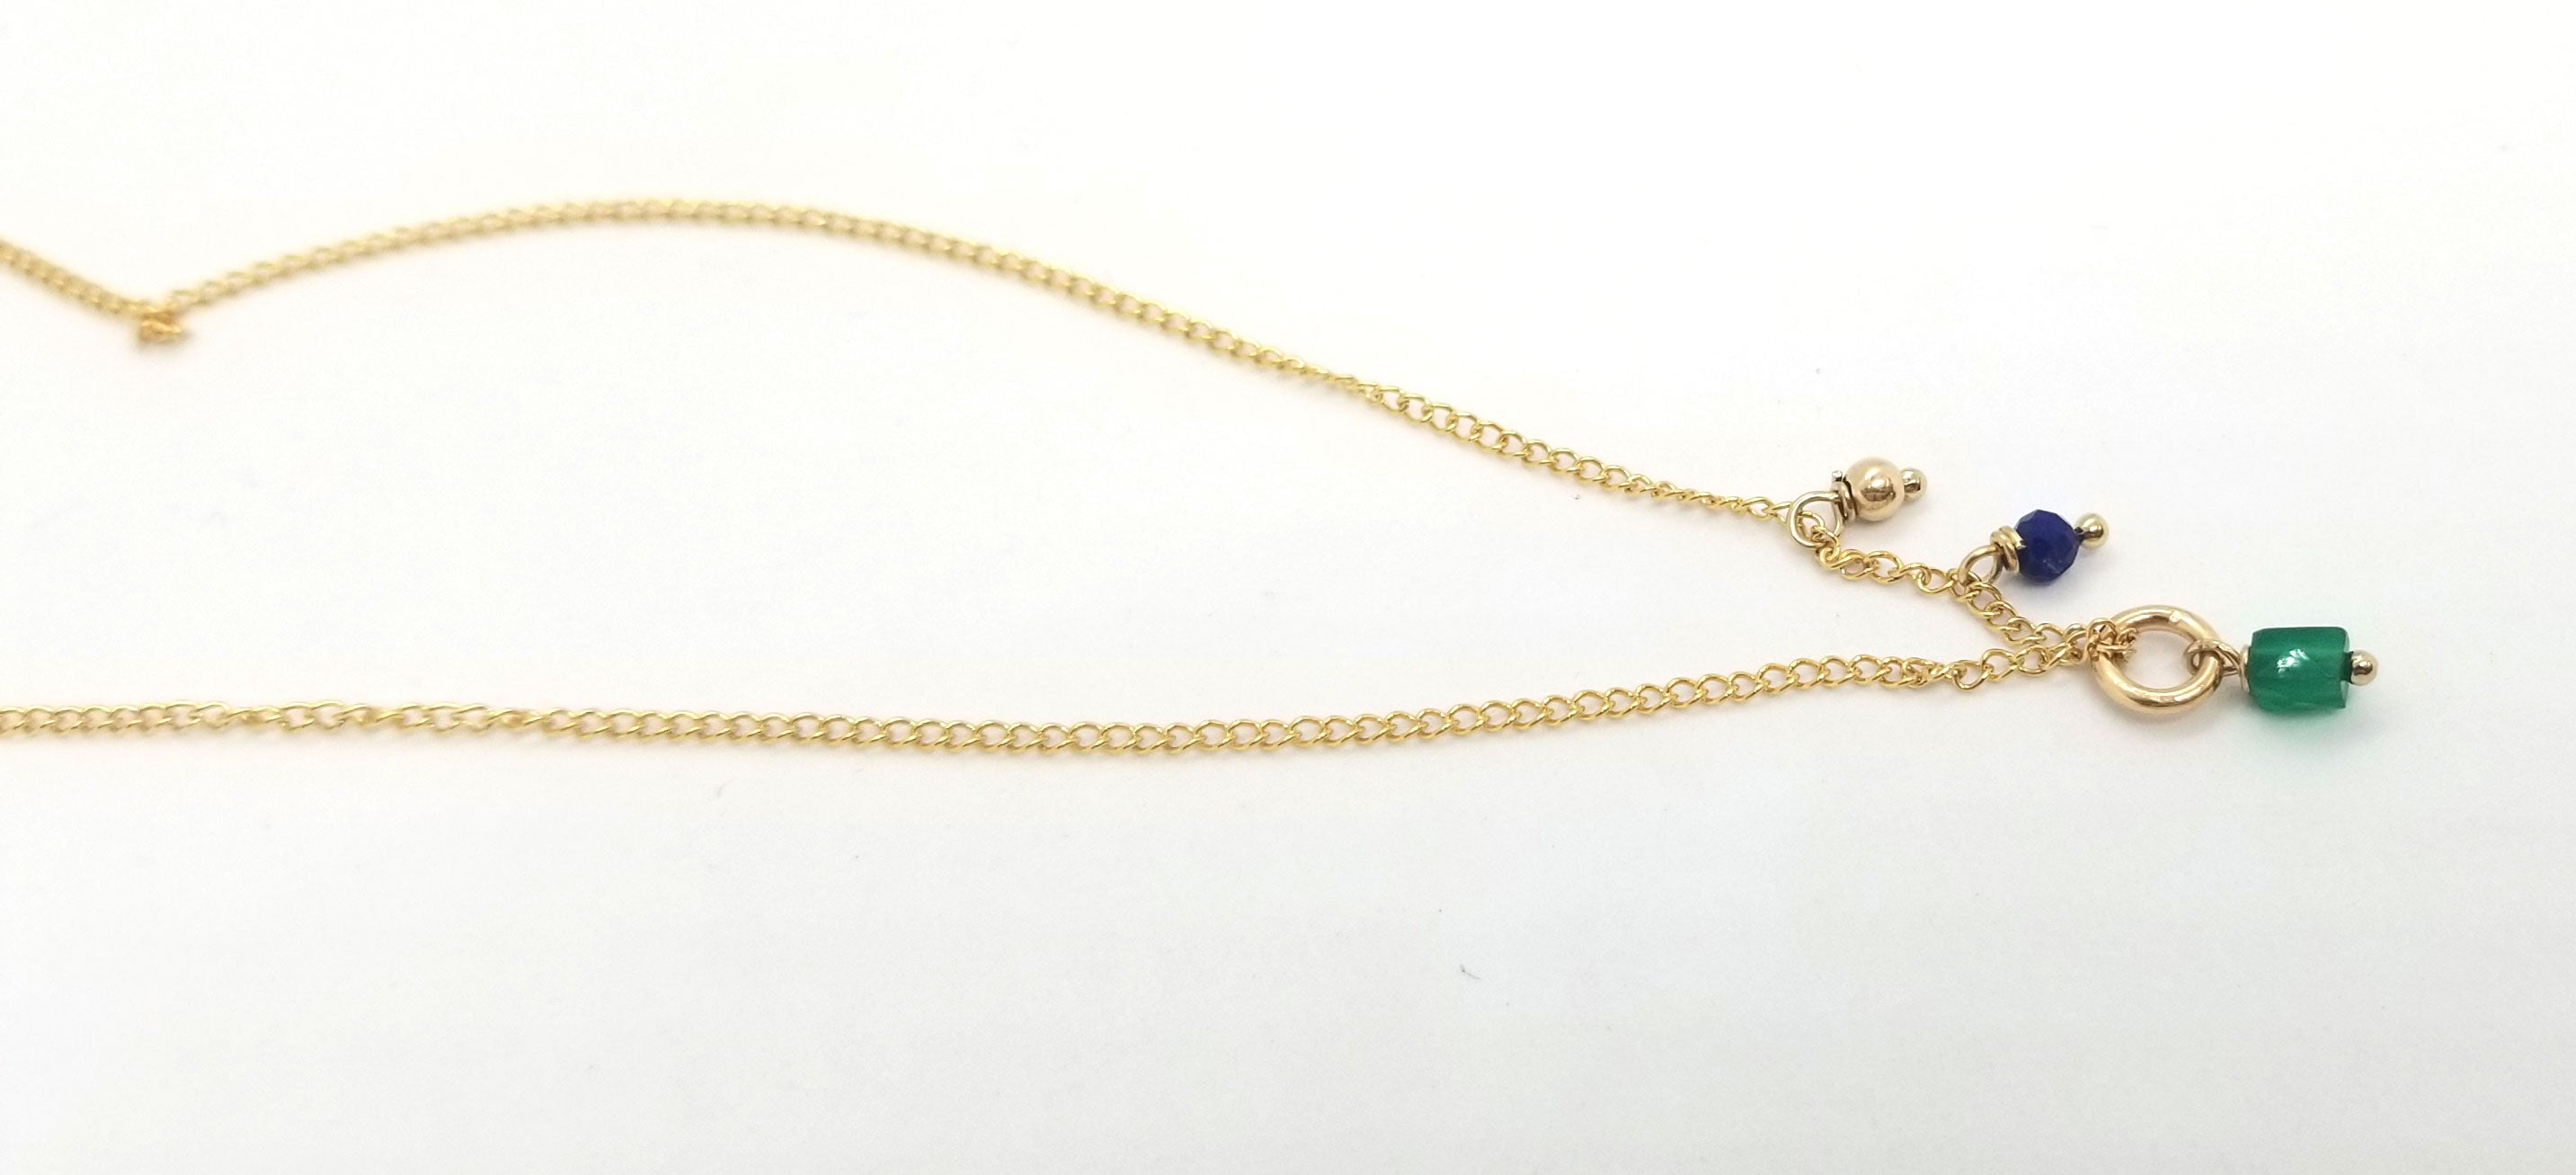 The Costa Gold Necklace